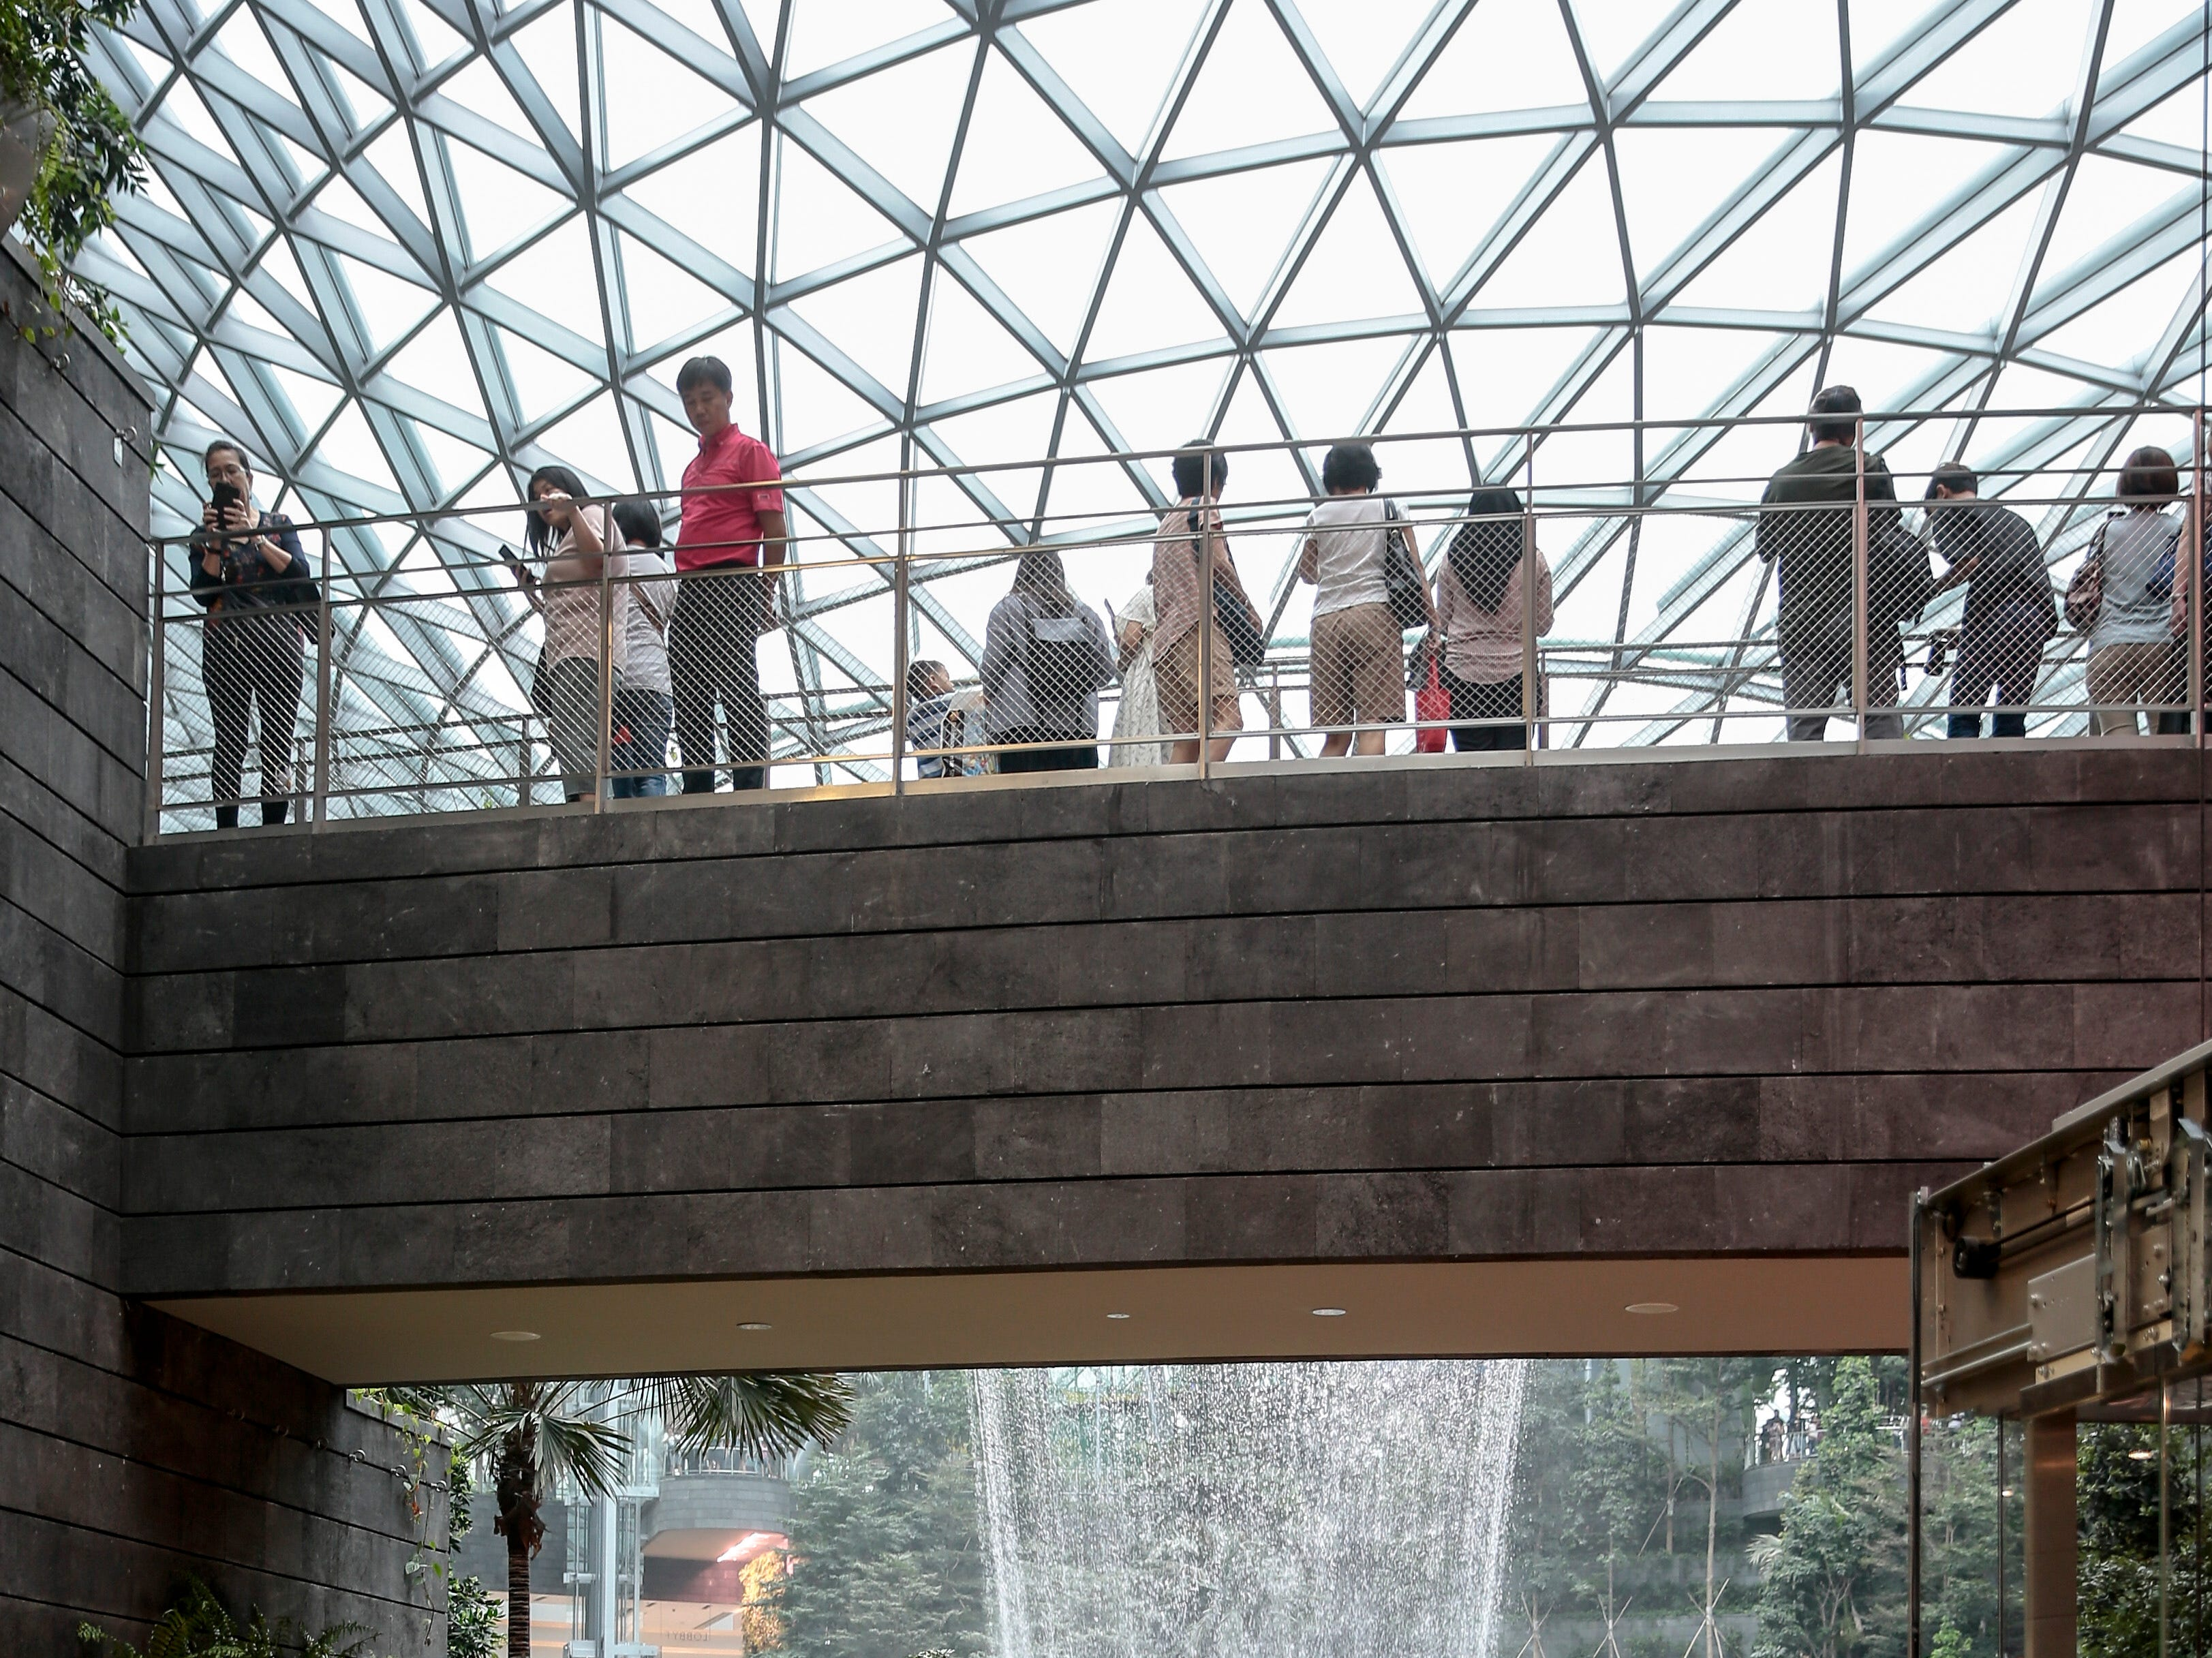 Members of the public are seen on corridors pictured against the Rain Vortex inside Jewel Changi in Singapore.